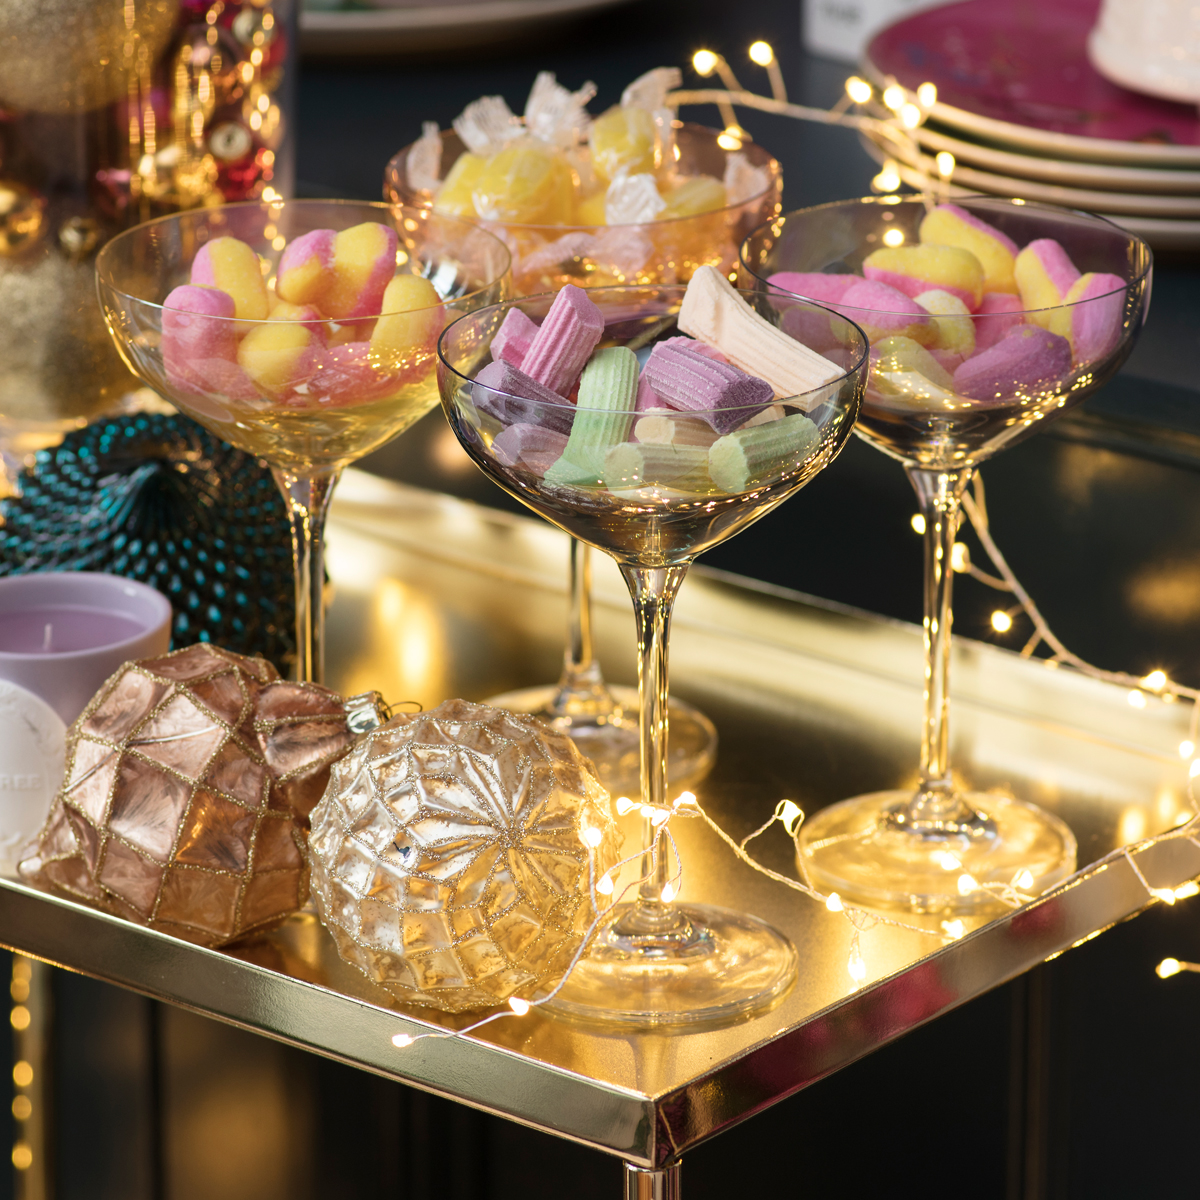 Retro sweets in champagne coupes and Laduree candles for a very sweet Christmas